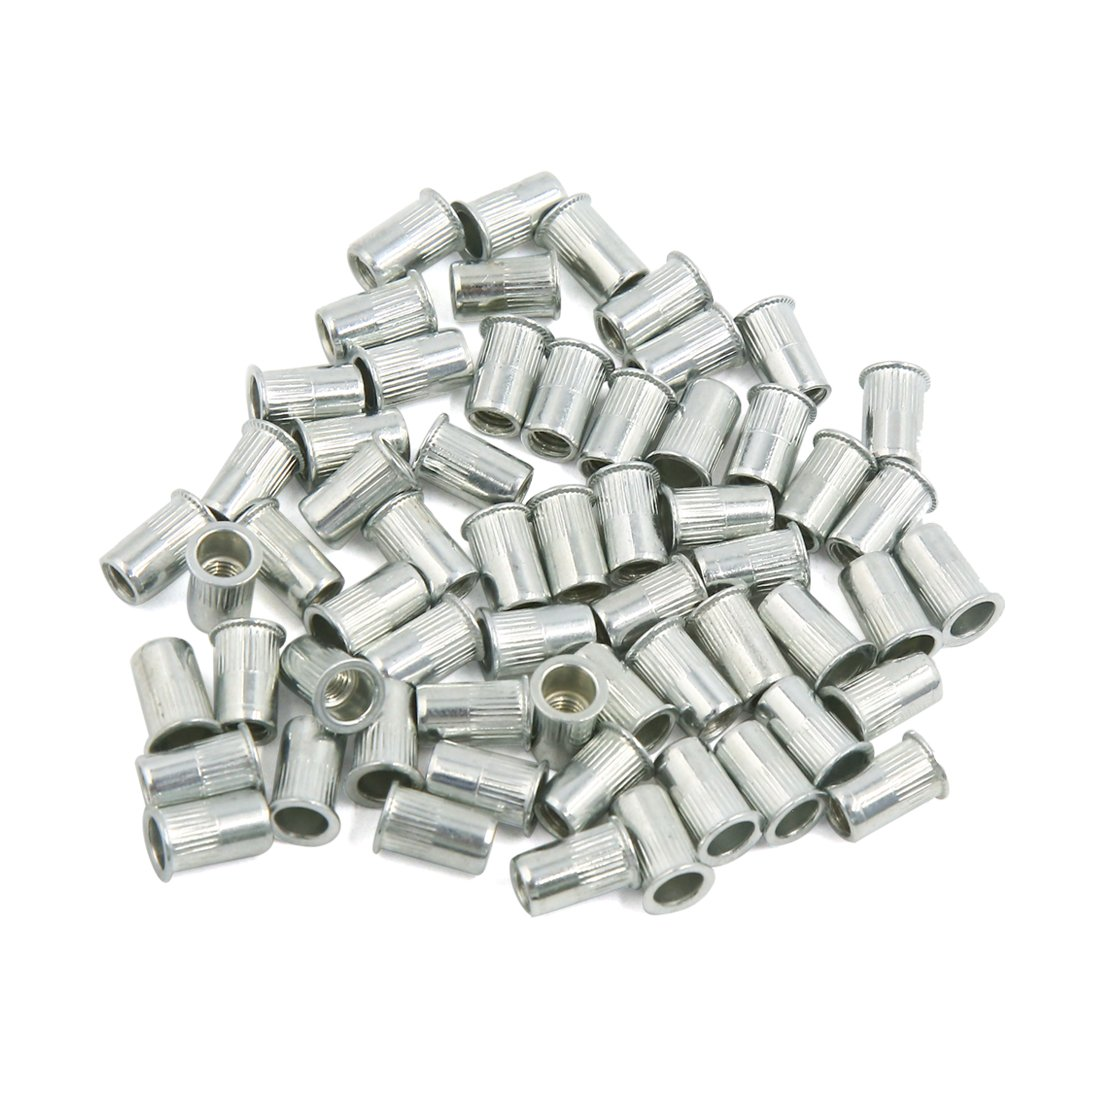 uxcell a16073000ux1854 Rivet Nut, 60 Pack Unknown